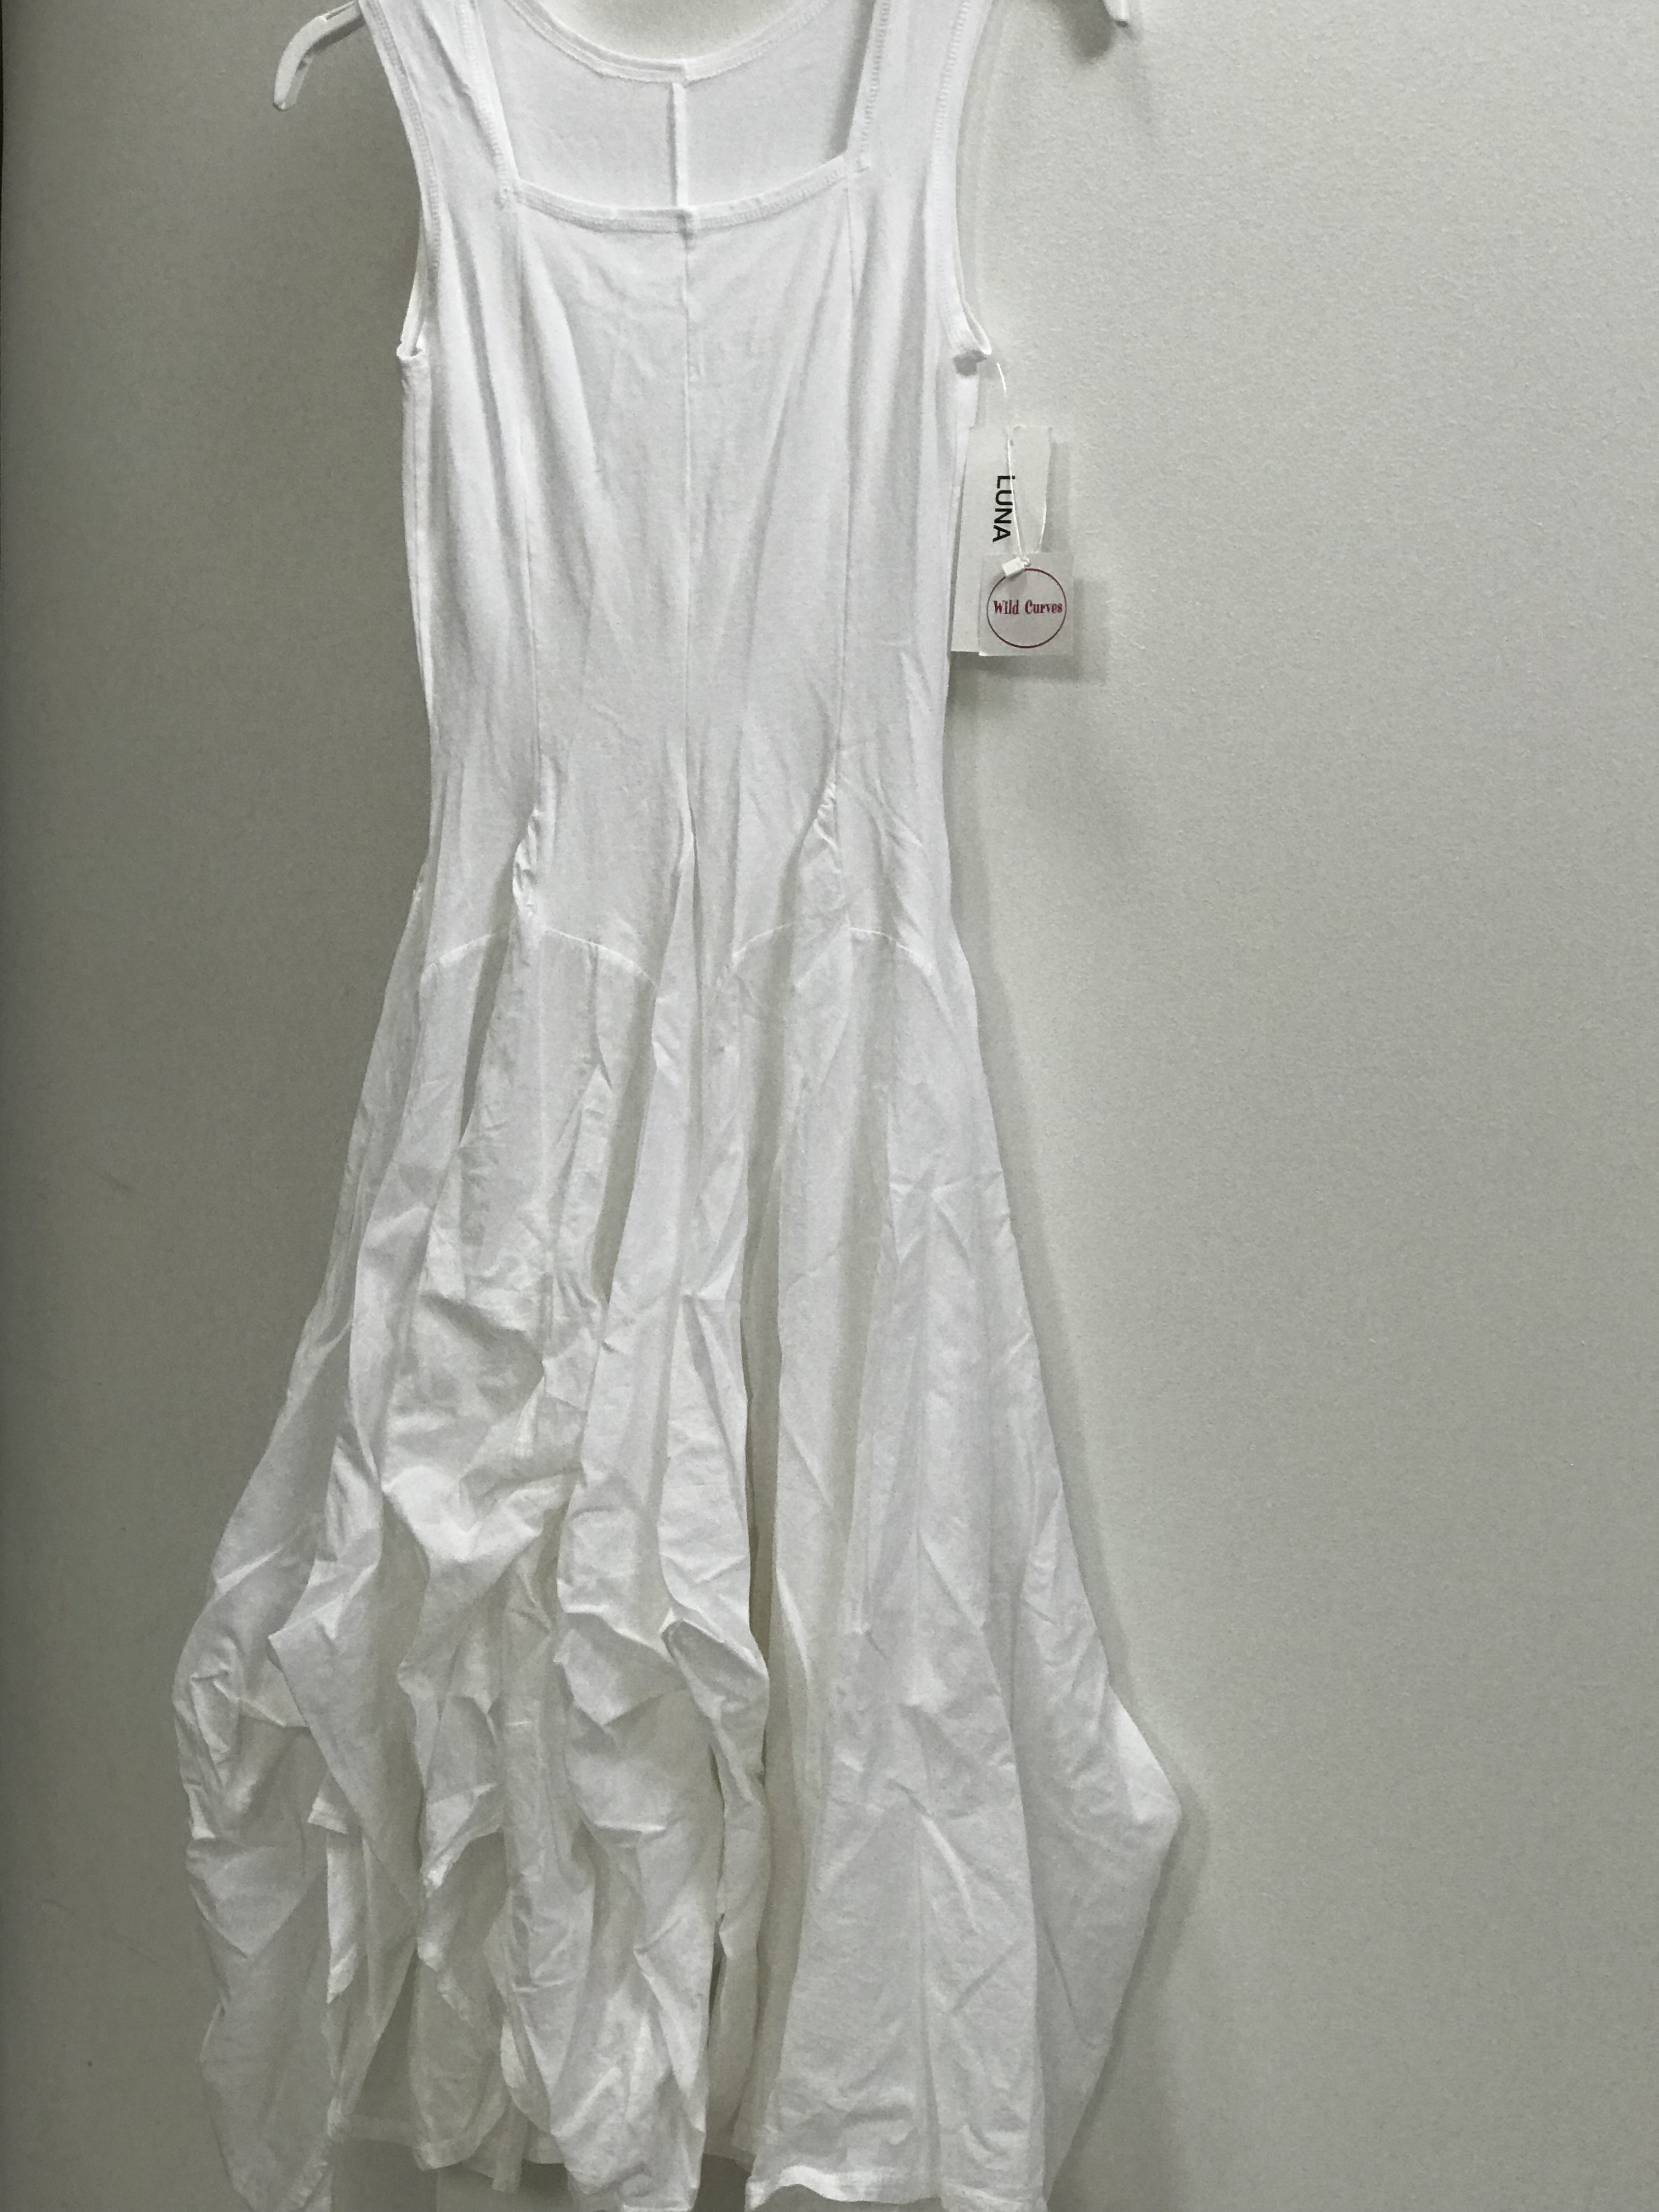 Luna Luz: Romantic Square Neck Tied & Dyed Midi Dress in White (Ships Immed, 1 Left!) LL_534T_WHITE